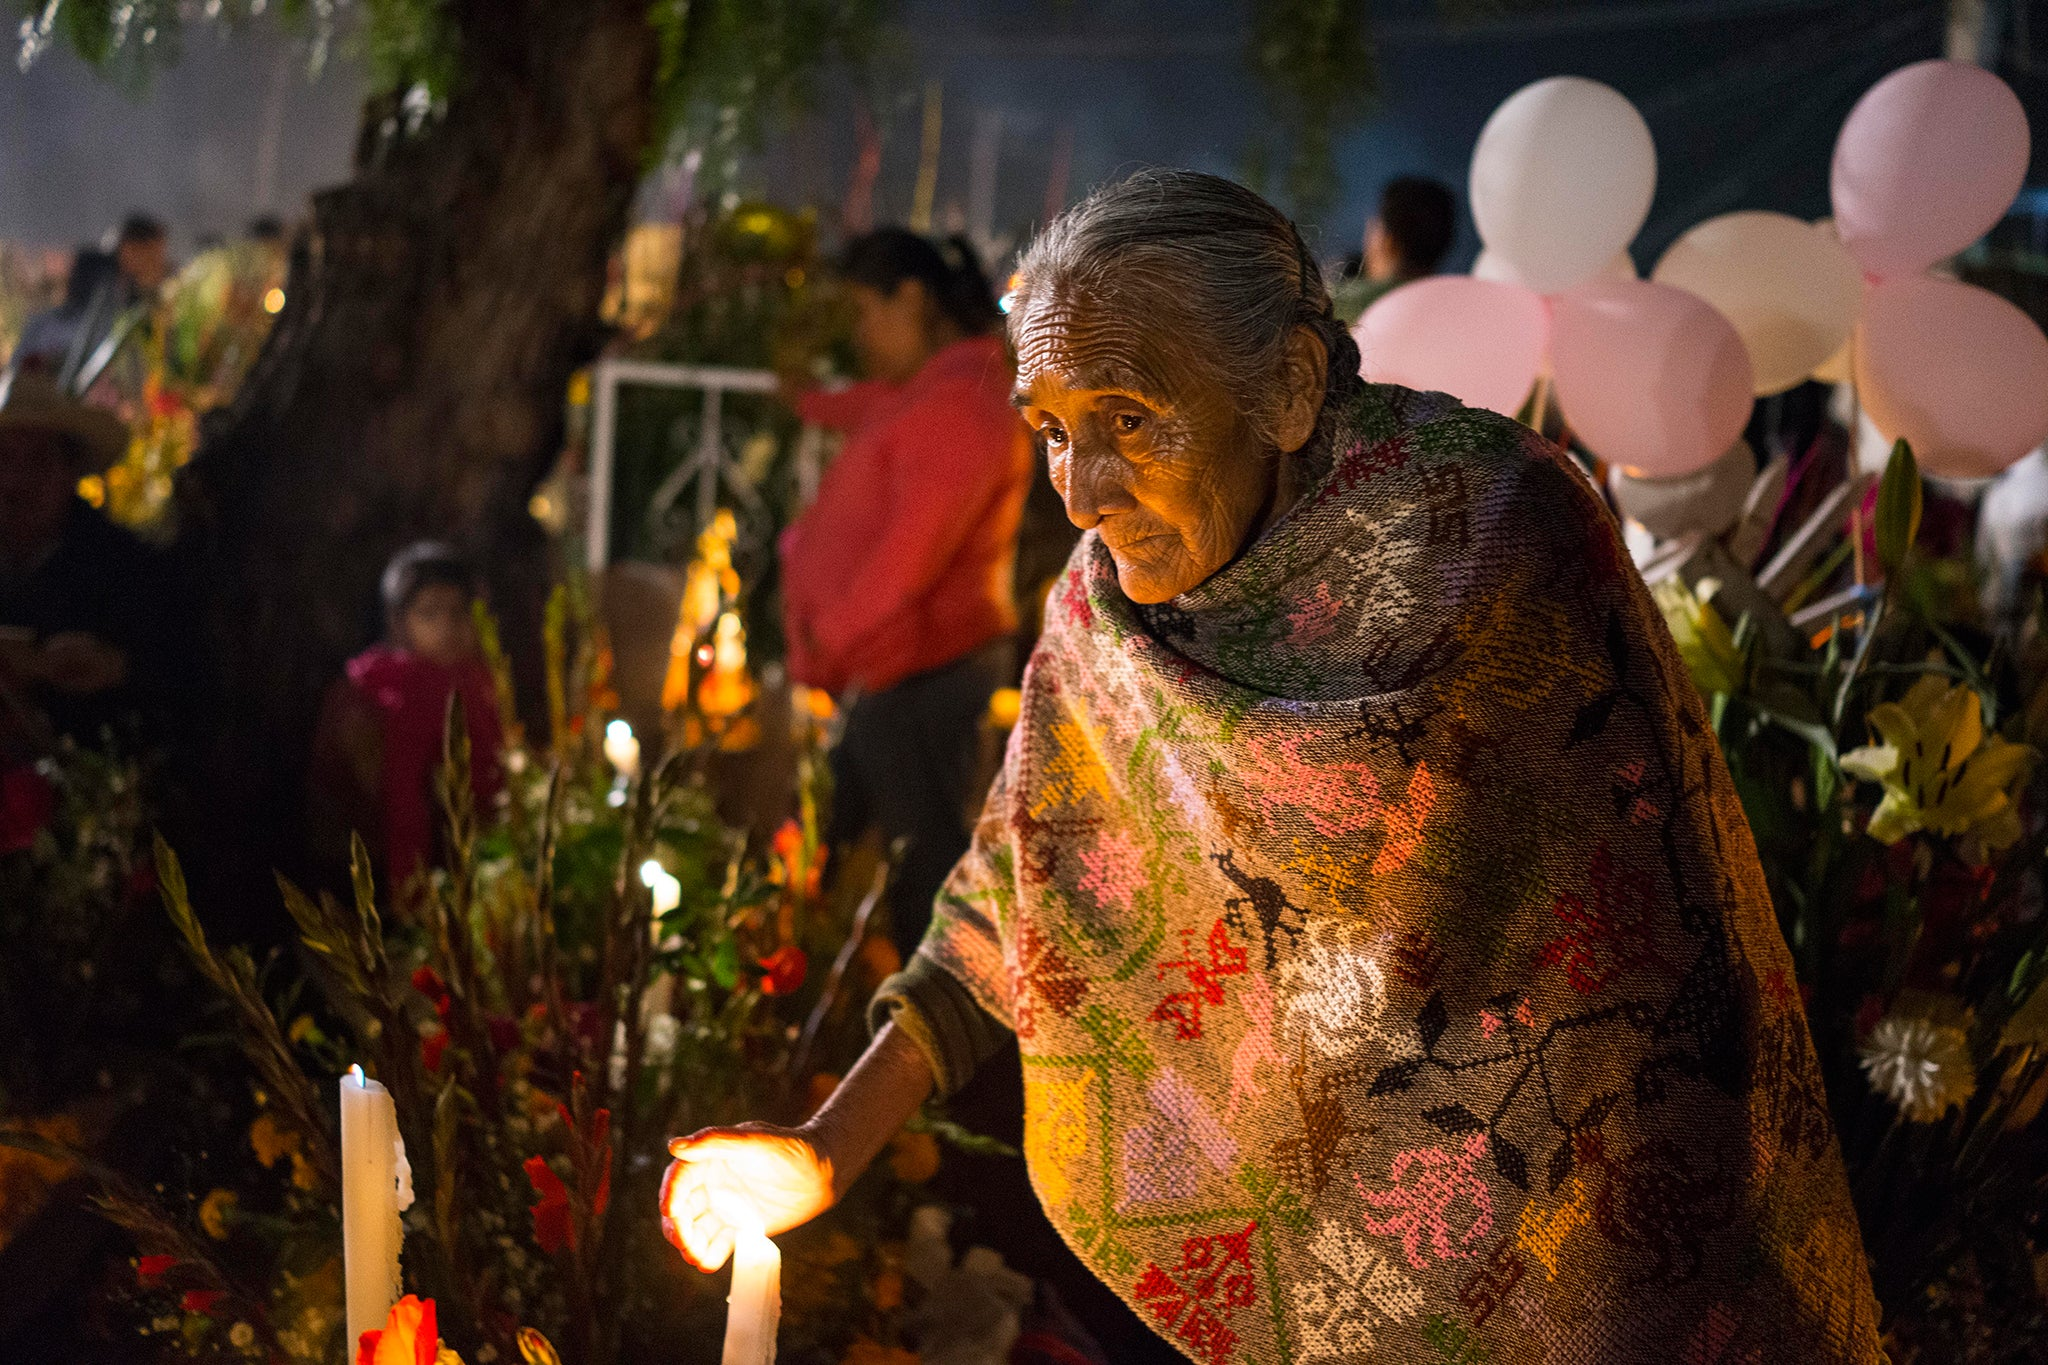 Mexico City's Day of the Dead - through the lens of Antonio Olmos